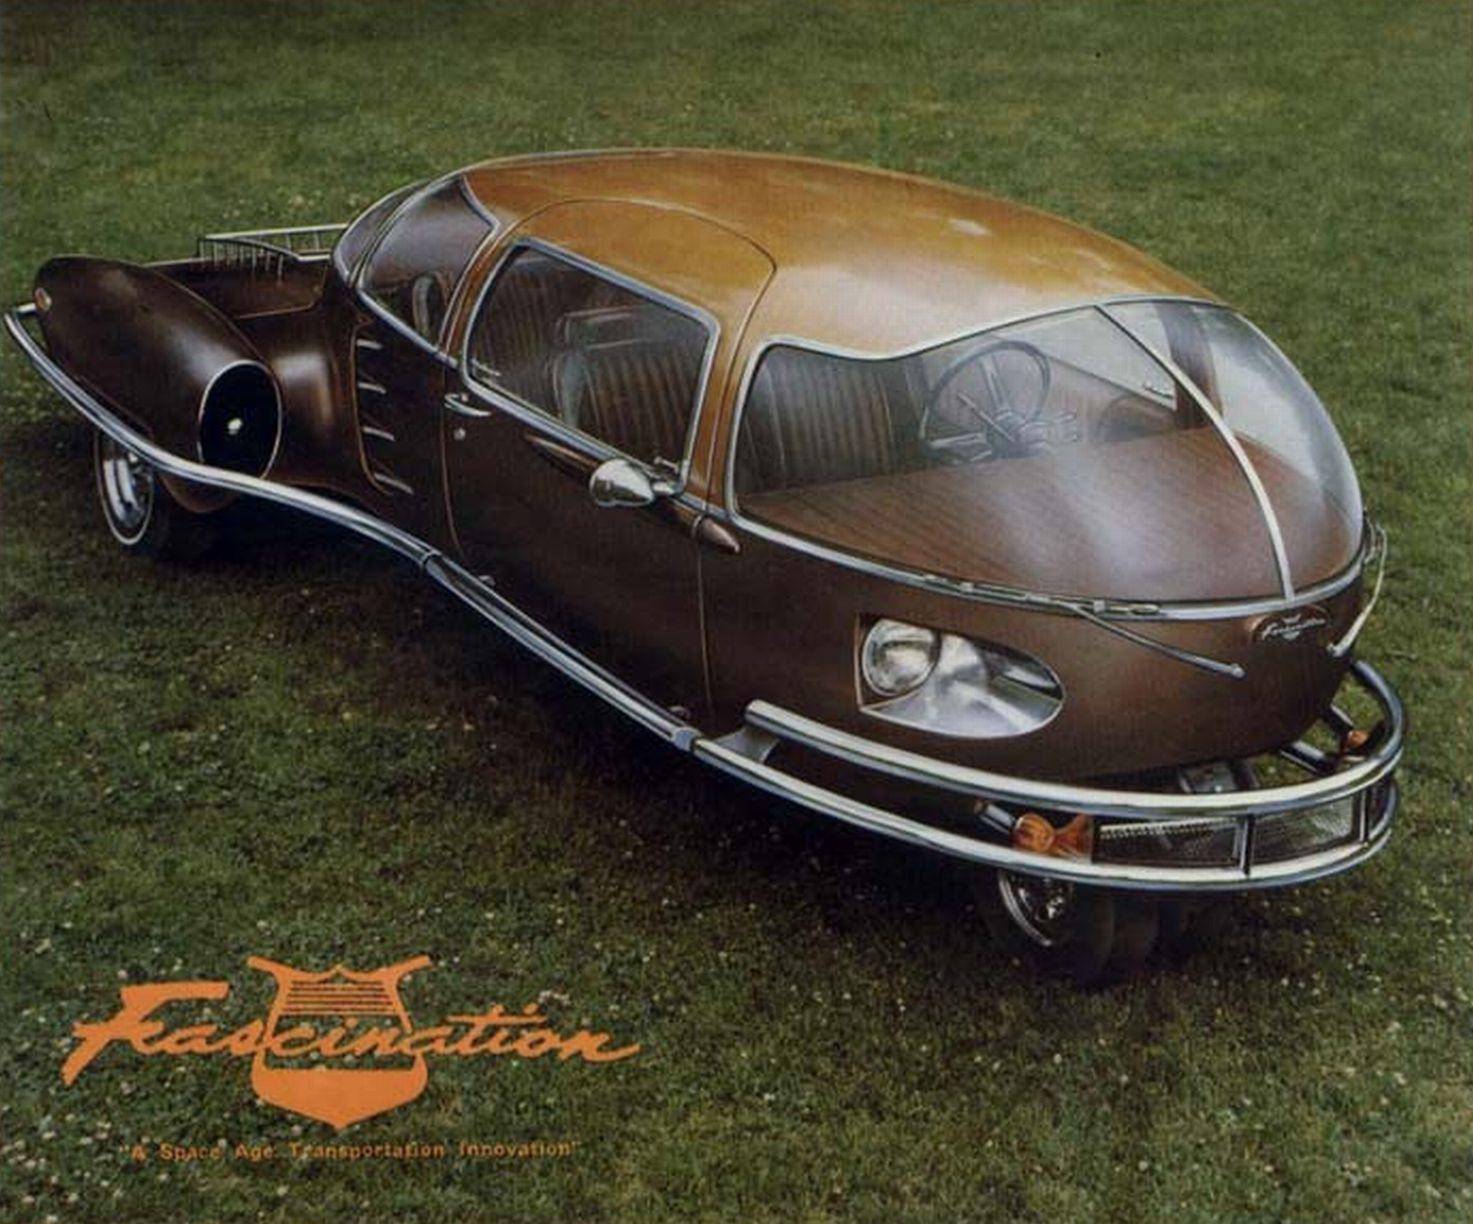 Fascination Car Was The Brain Child Of Paul M Lewis Of The - Cool cars preston highway